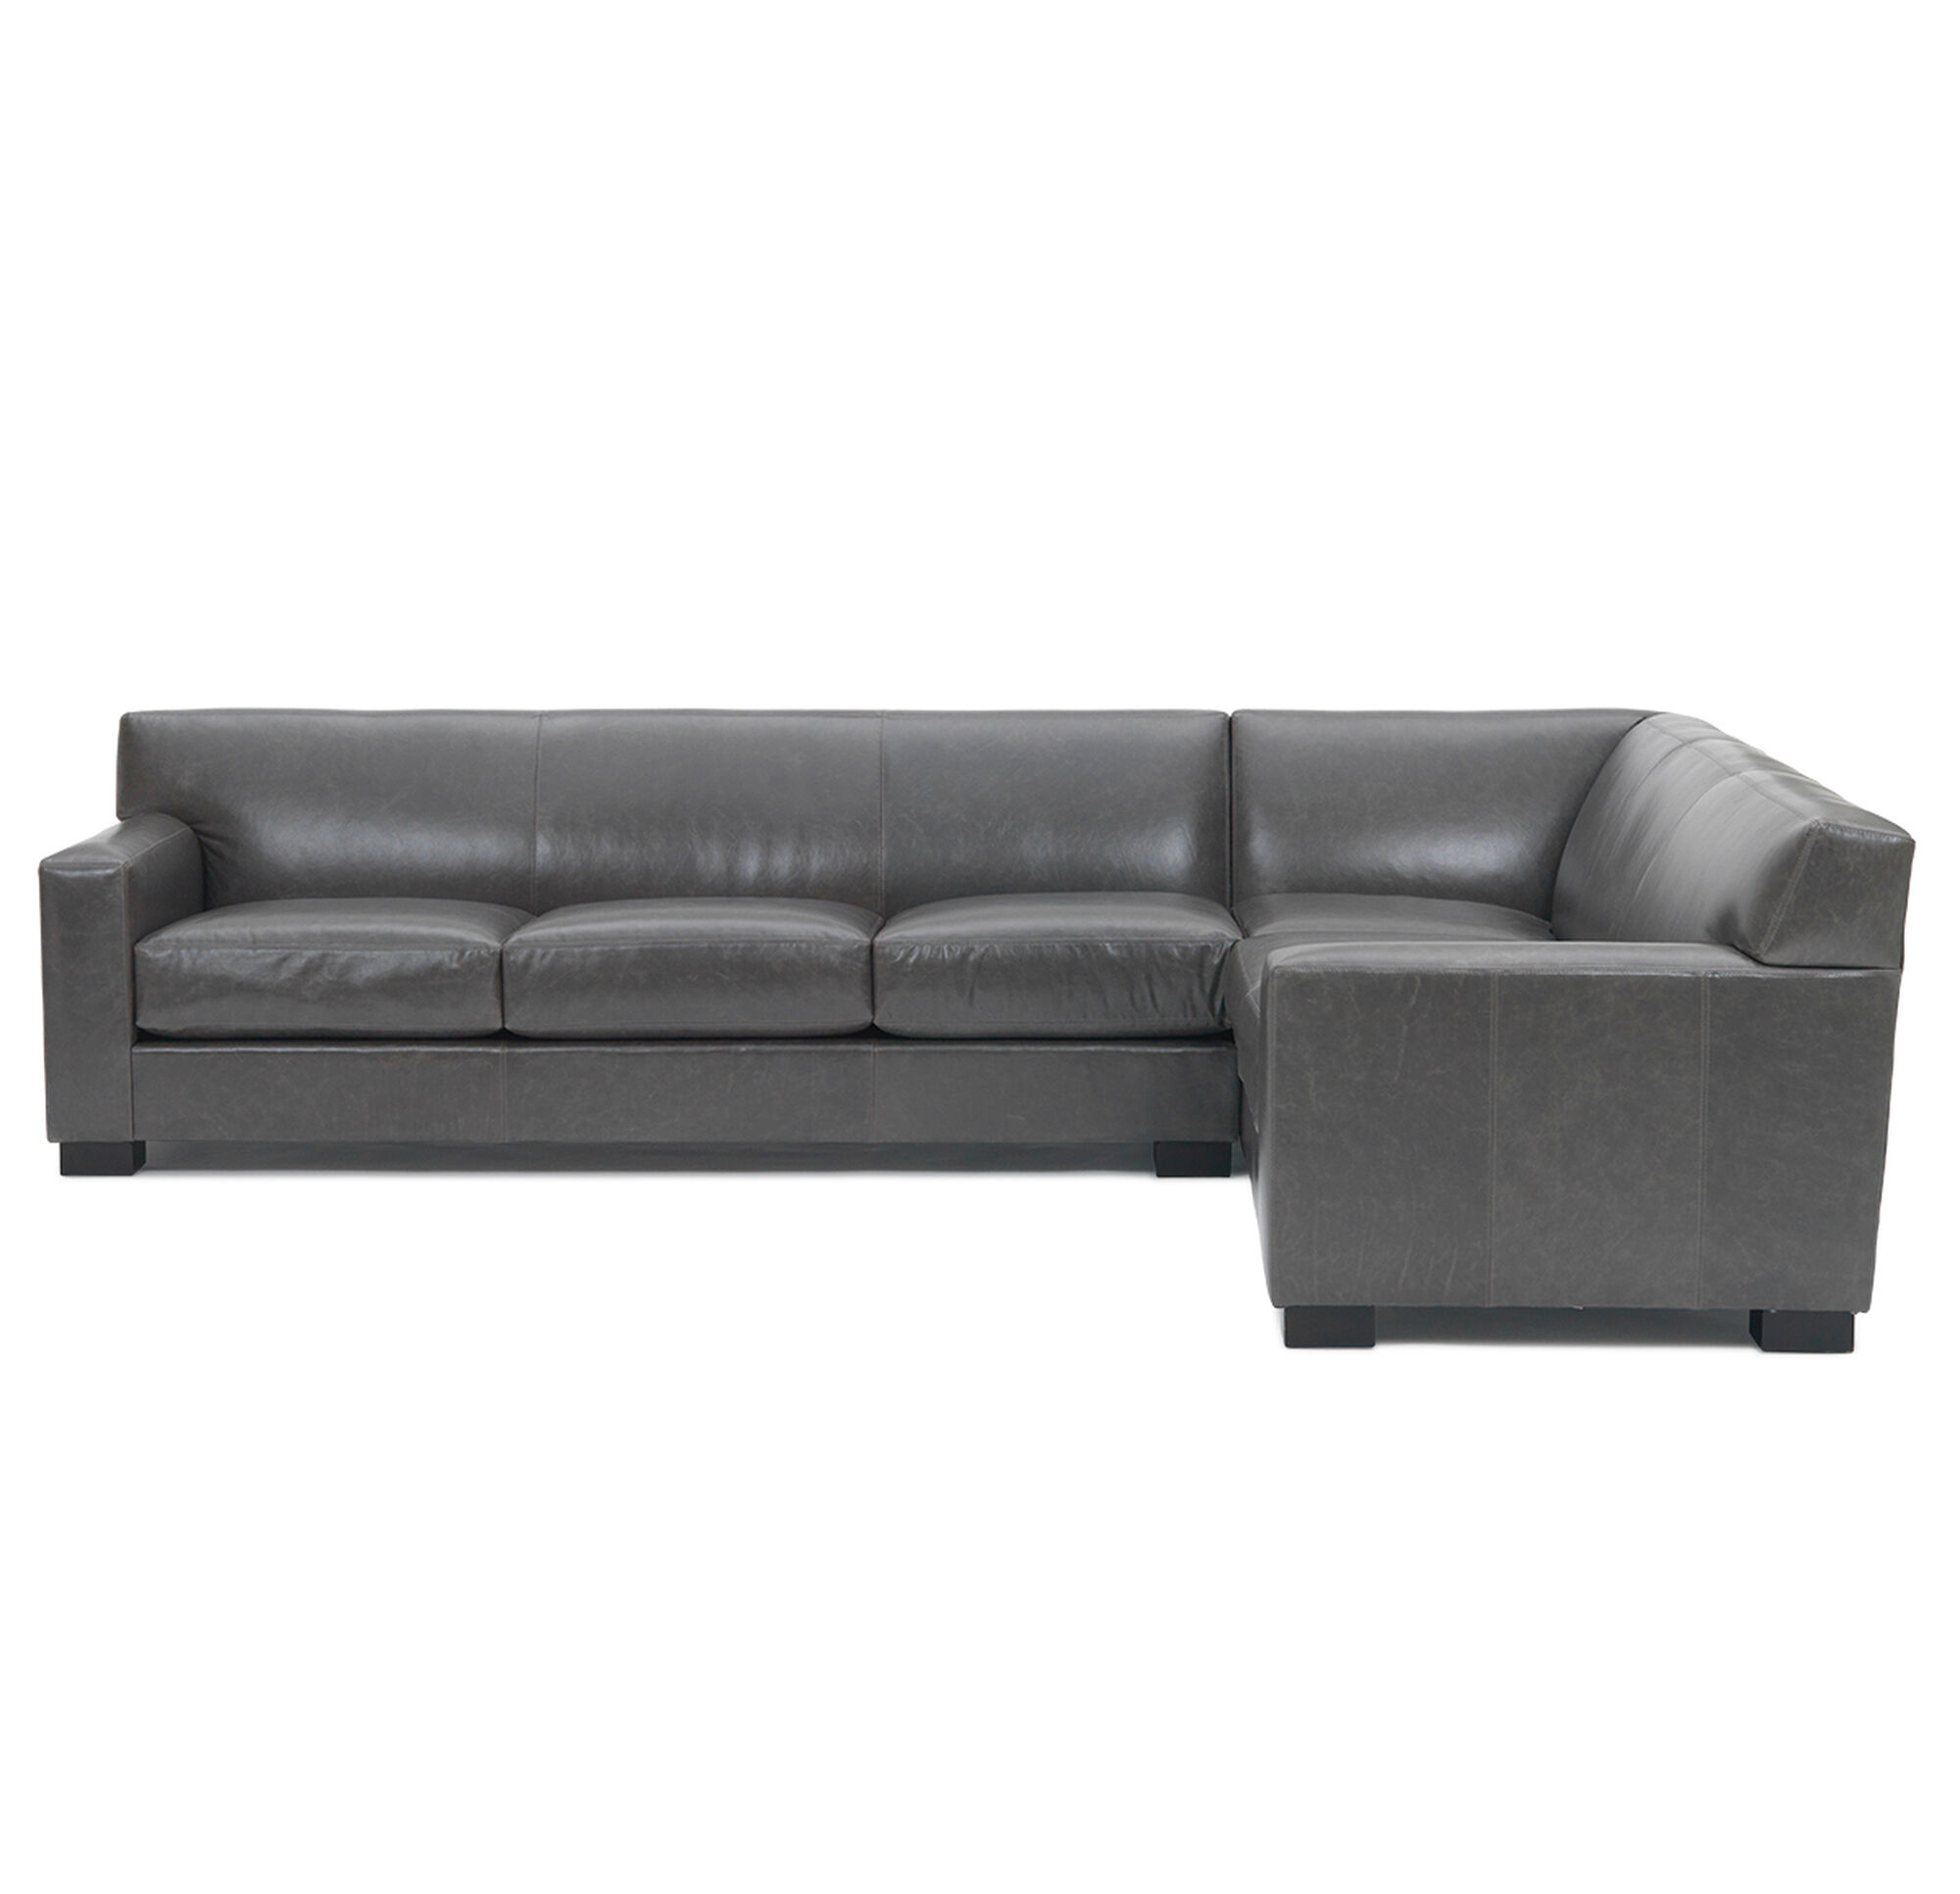 trendz faux bindy pin grey brown saddle leather sofa sectional